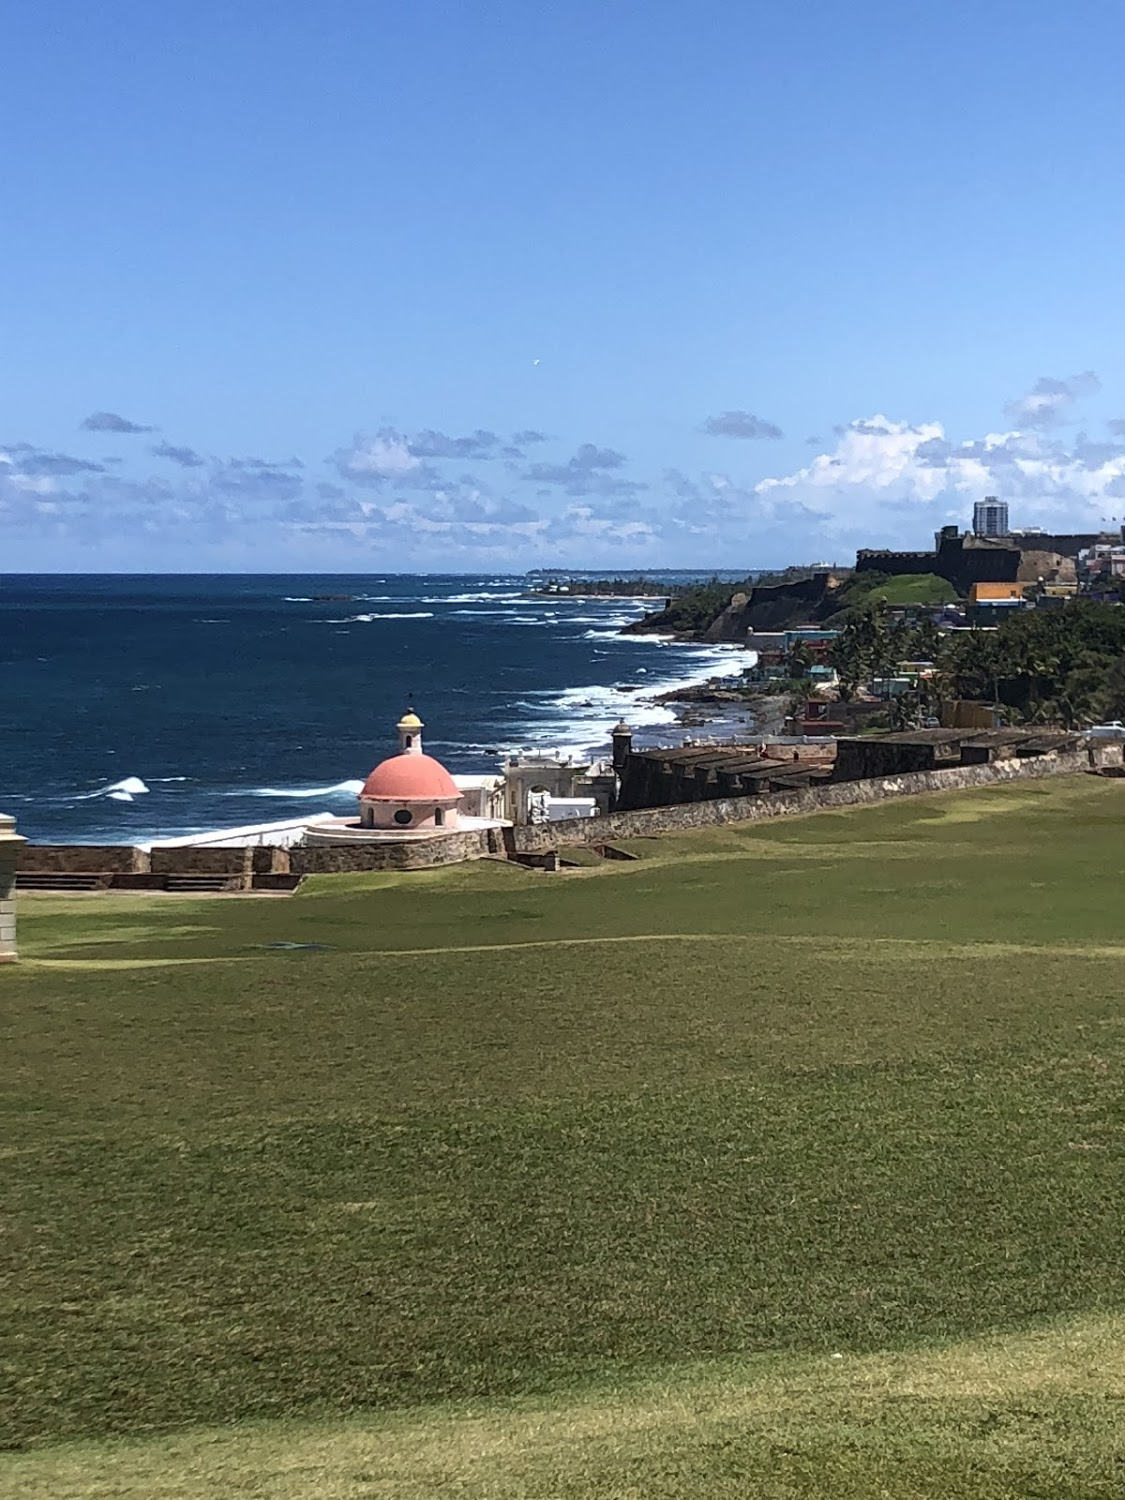 This is the view of the coast off of Old San Juan right by one of the old forts